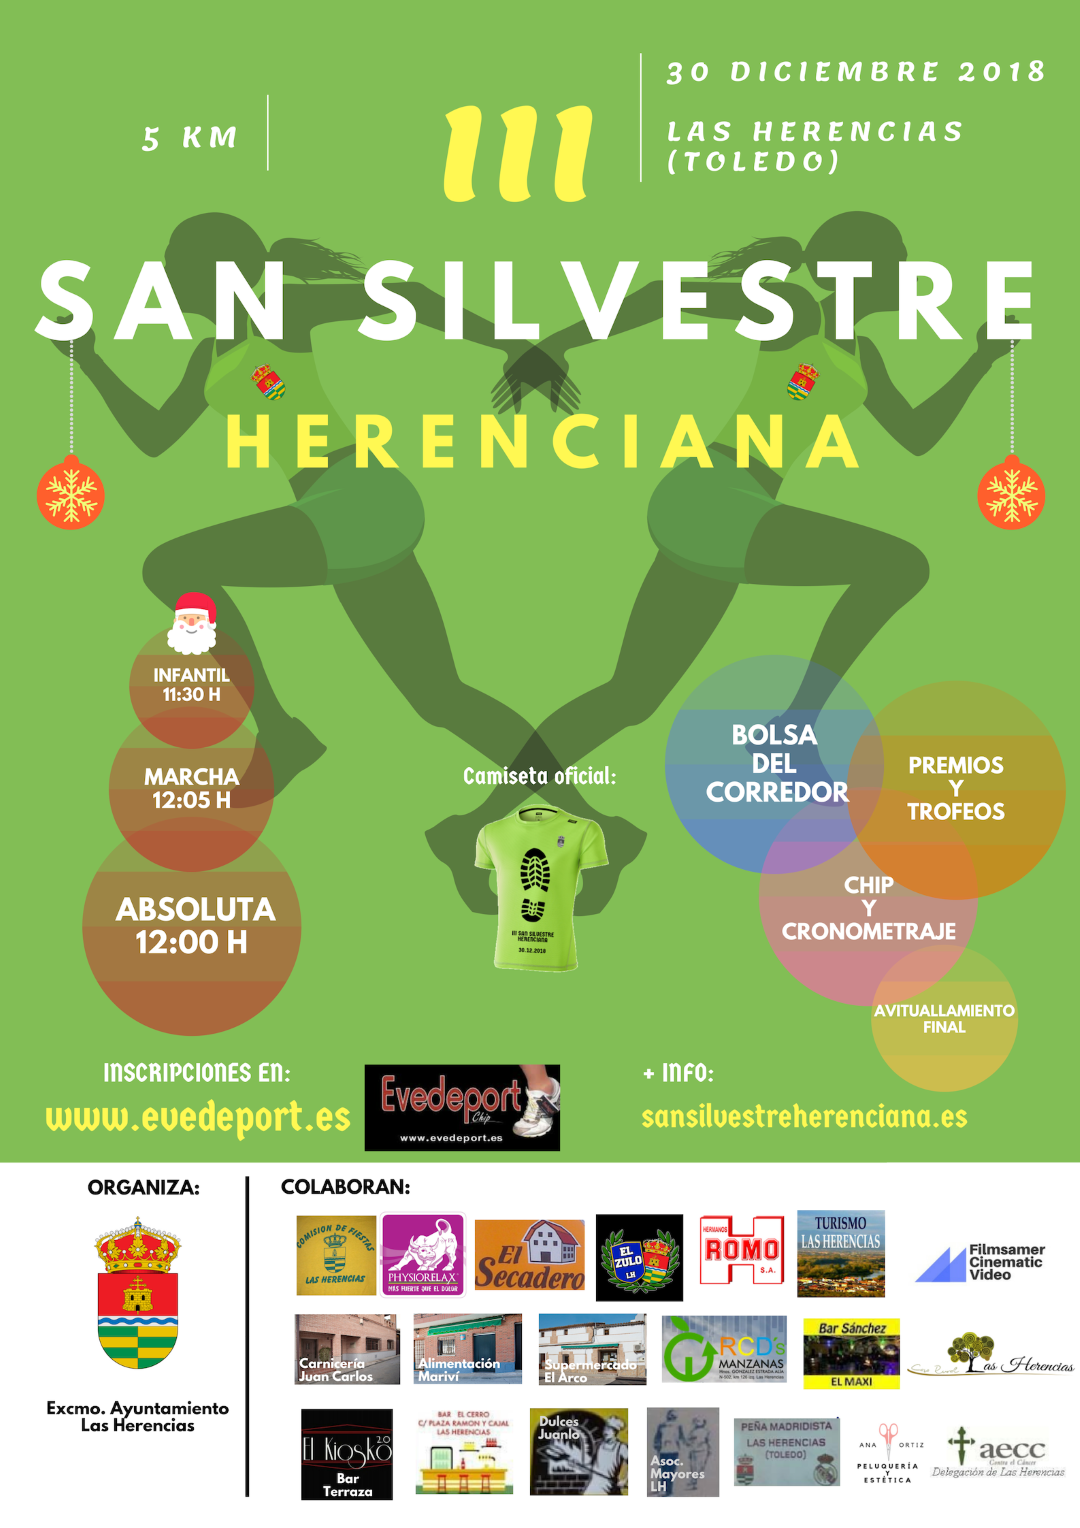 SAN SILVESTRE HERENCIANA 2018 Large